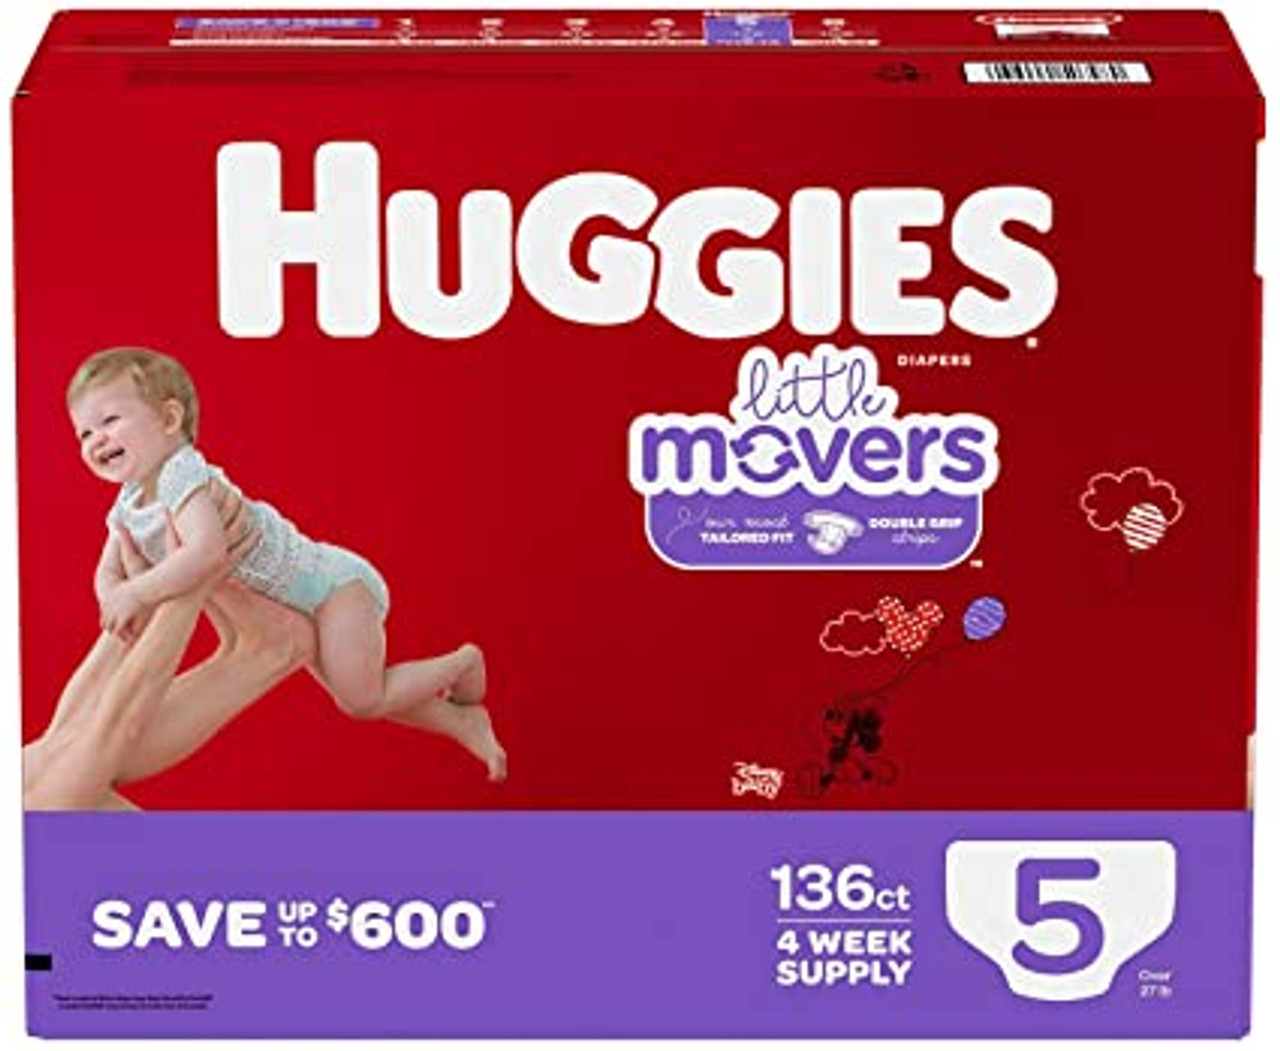 HUGGIES LITTLE MOVERS DIAPERS SIZE 5 136 CT